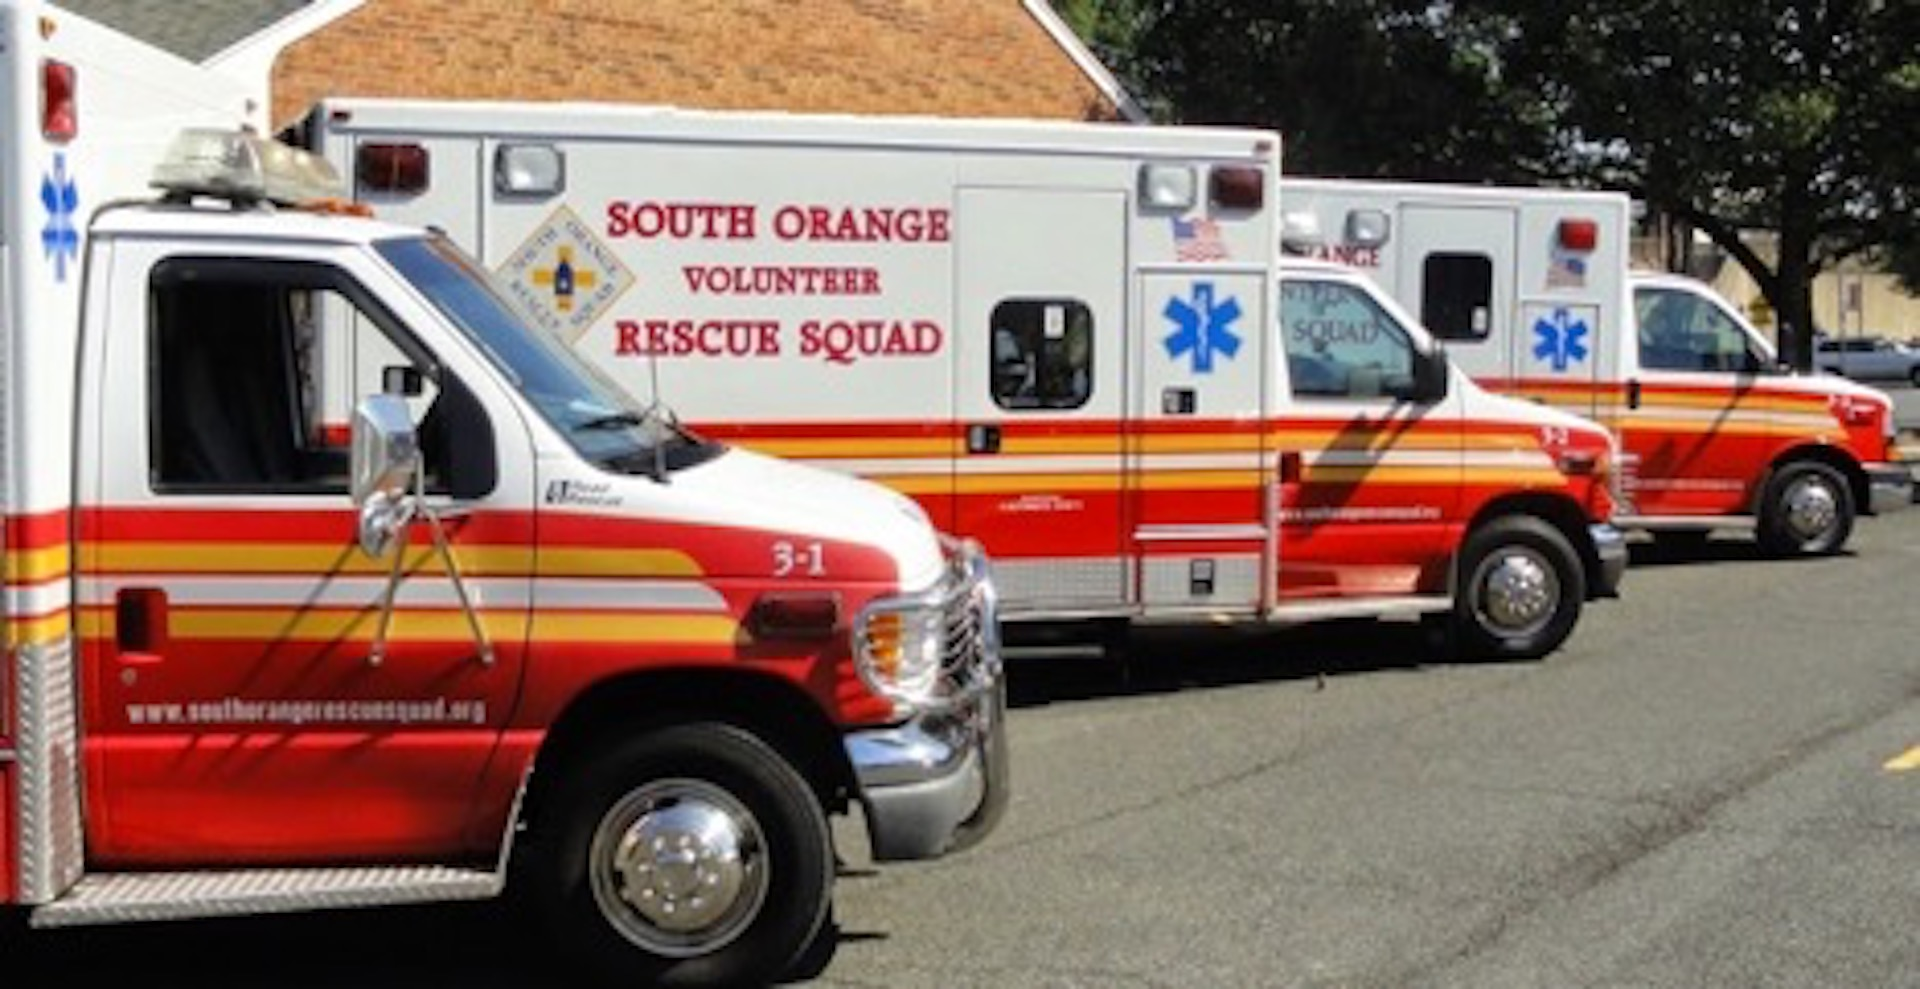 South Orange Volunteer Rescue Squad trucks.jpg